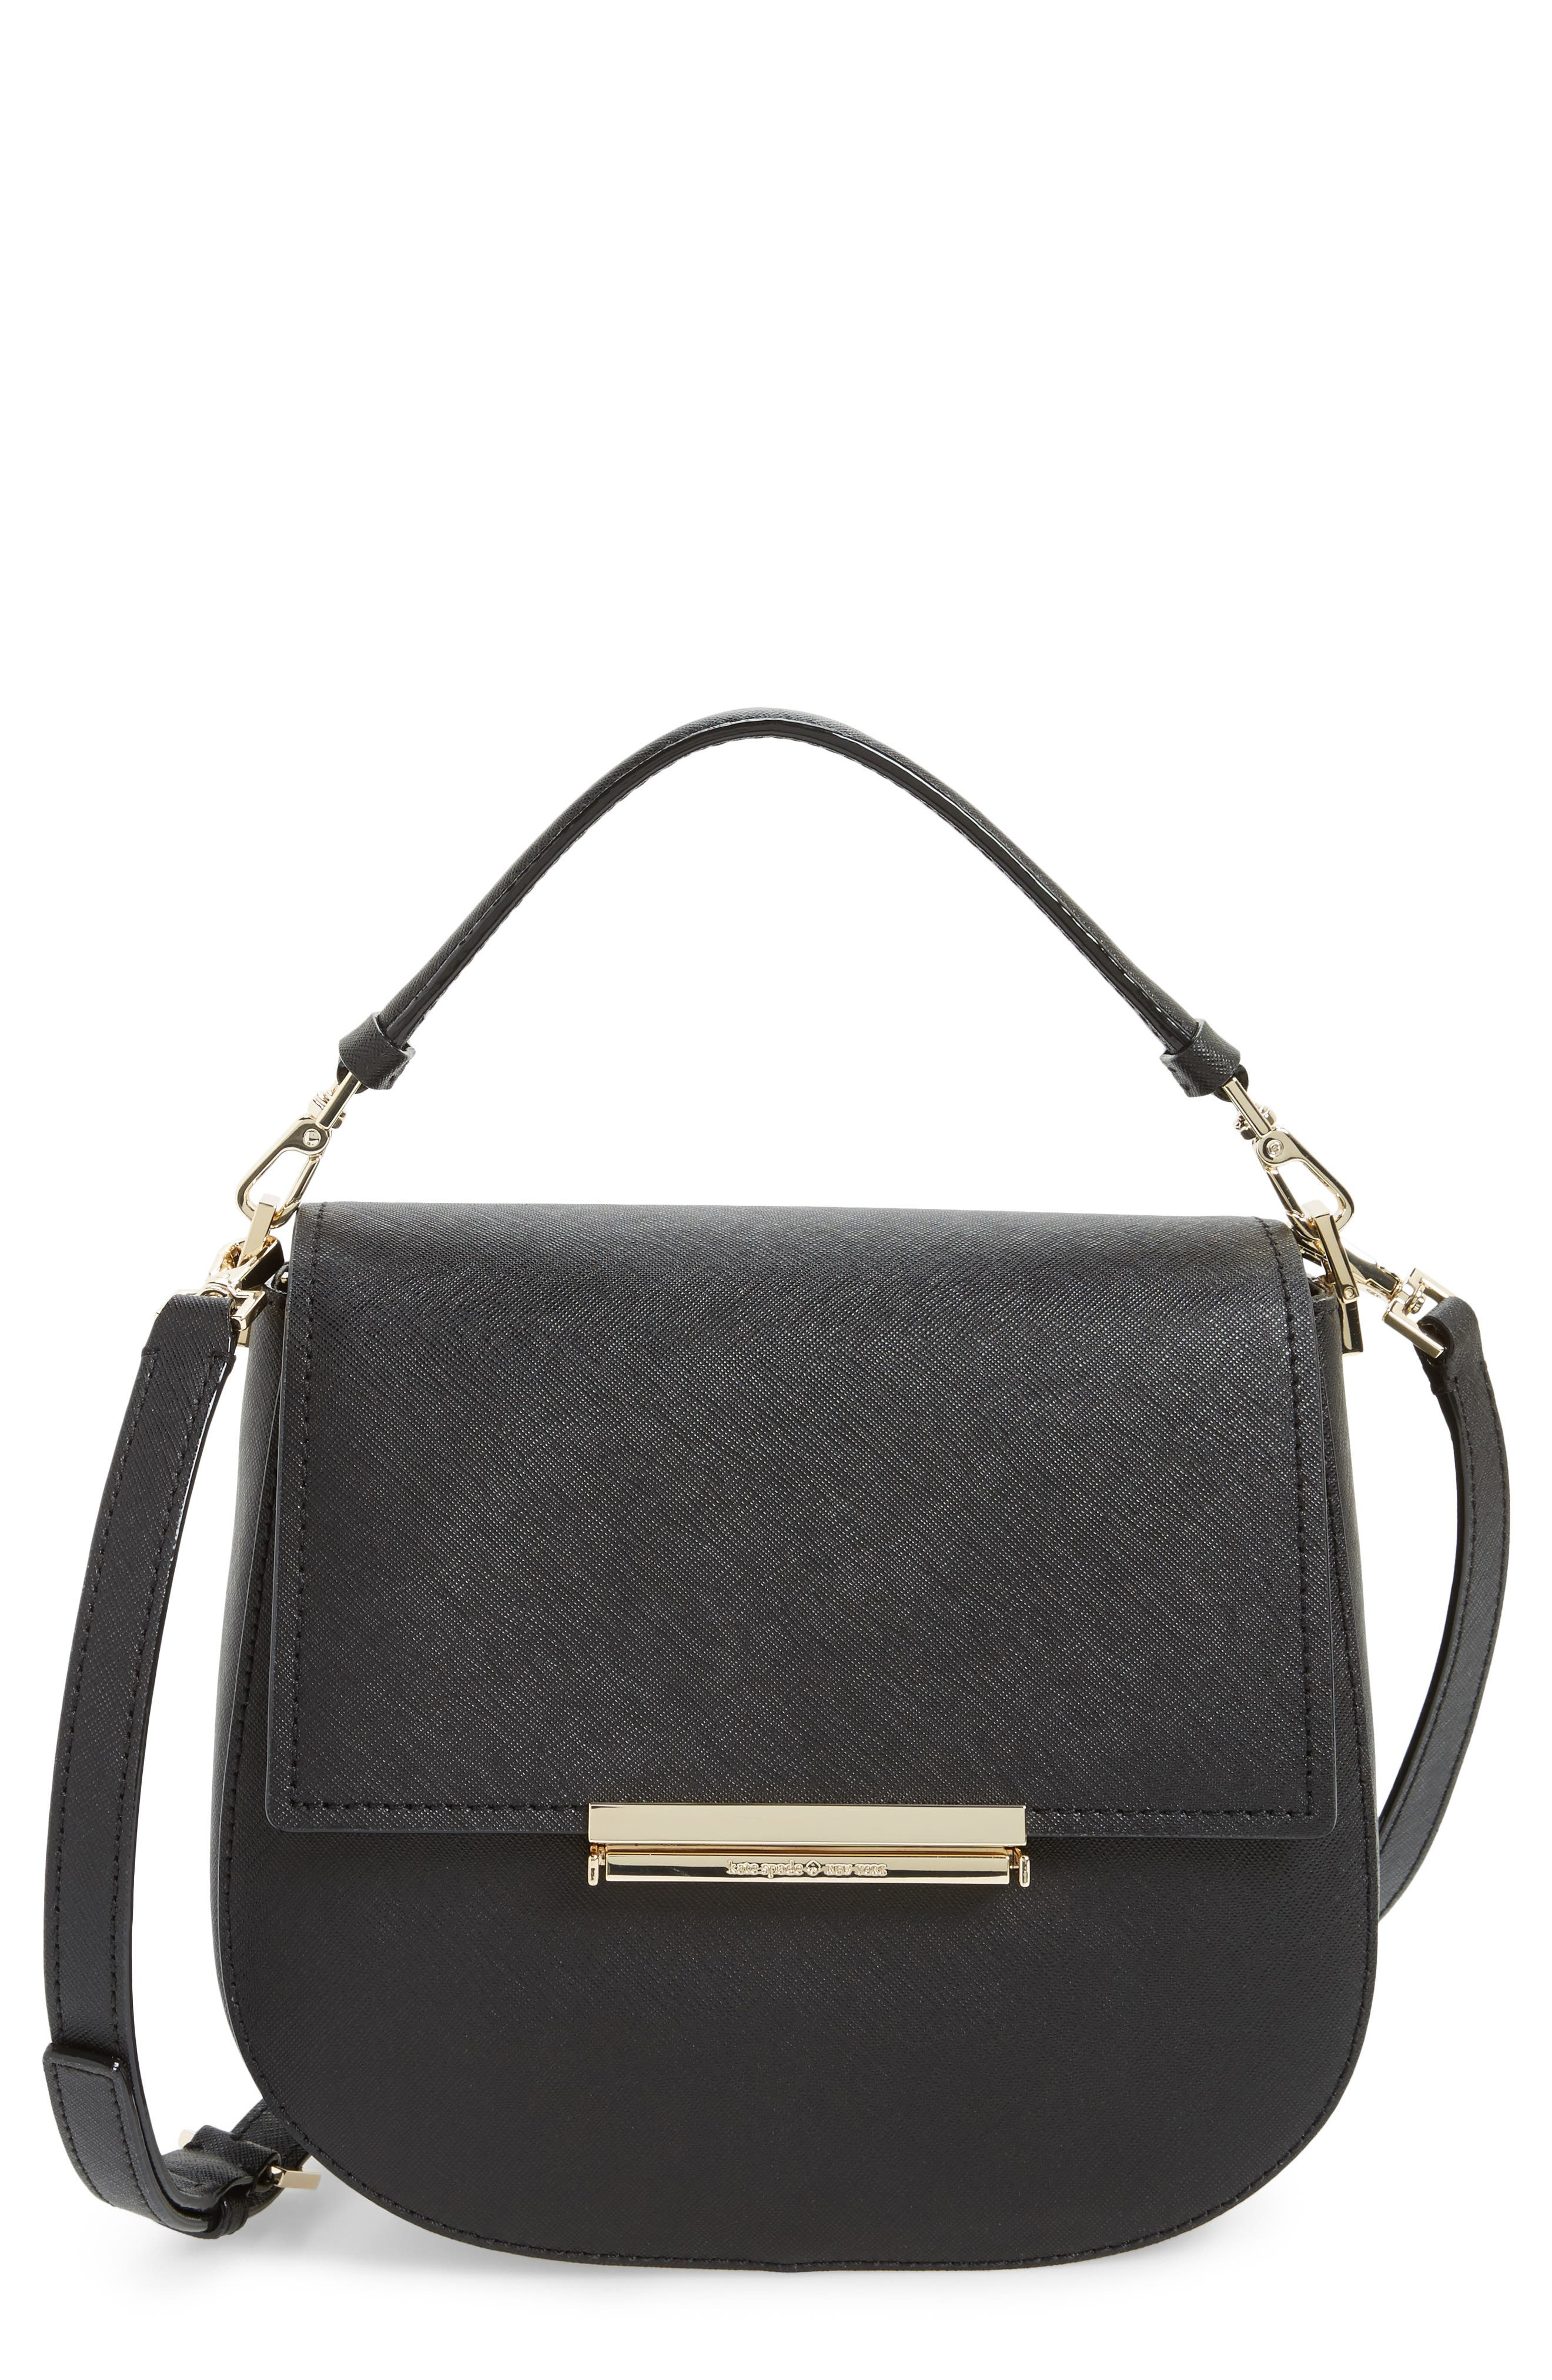 make it mine - byrdie leather saddle bag,                             Main thumbnail 1, color,                             001